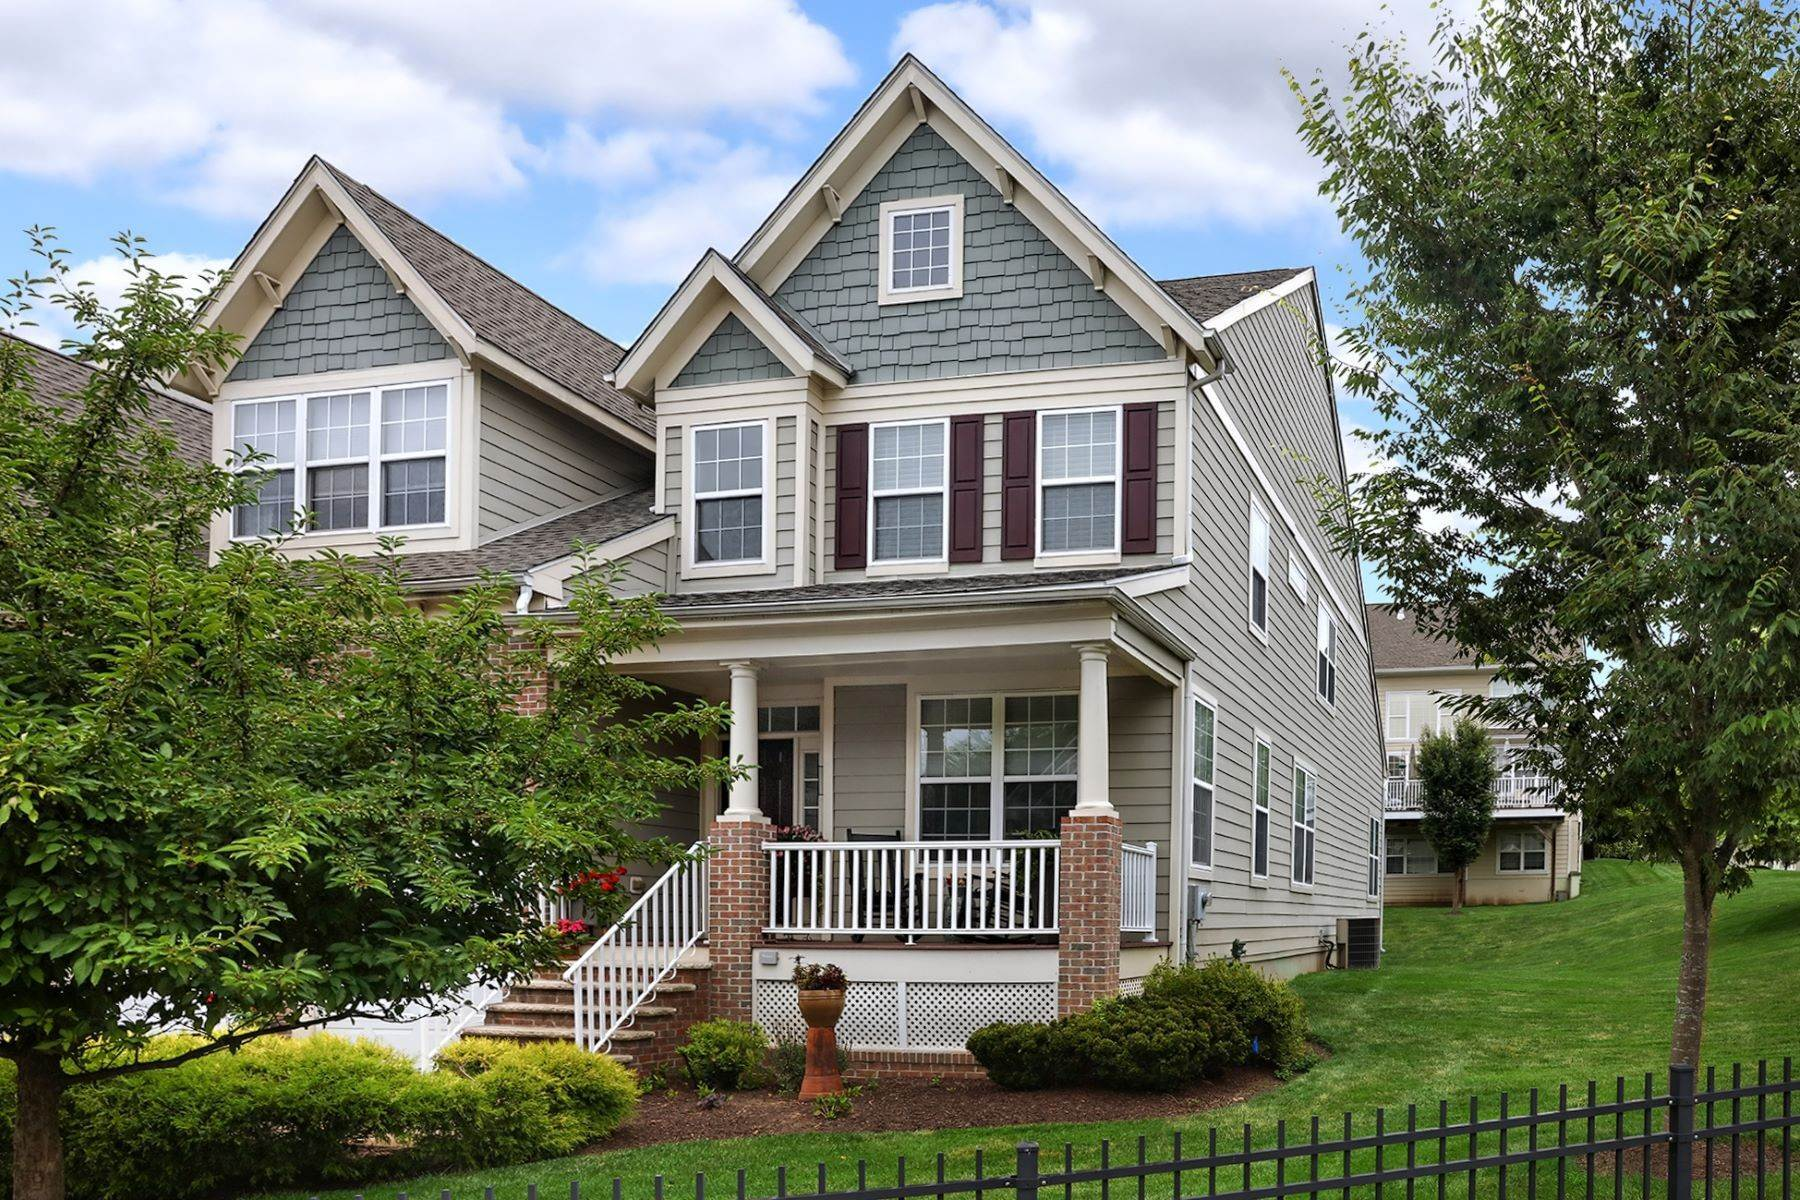 townhouses for Sale at Immaculate End Unit Livingston Model - Lambert's Hill 616 Heath Court Lambertville, New Jersey 08530 United States